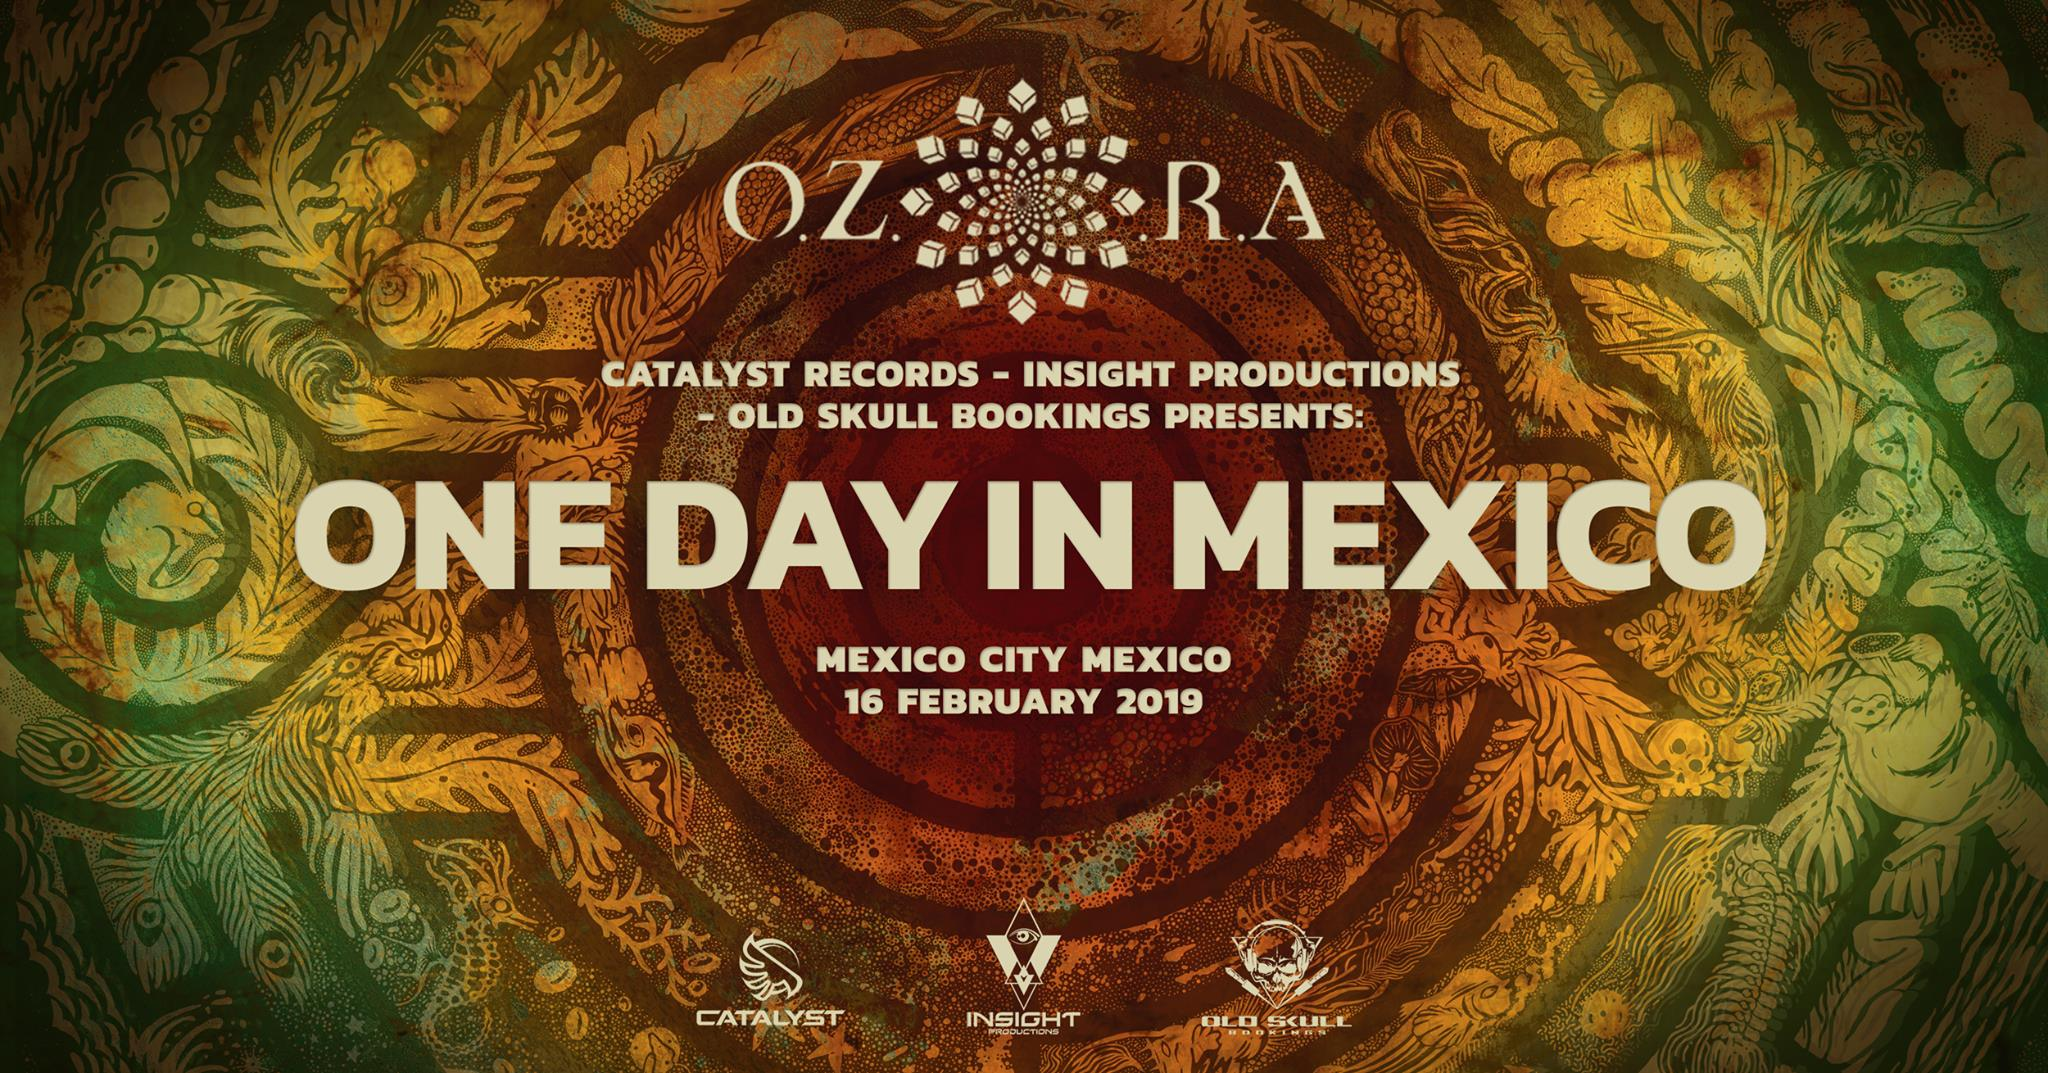 OZORA One Day in Mexico 2019